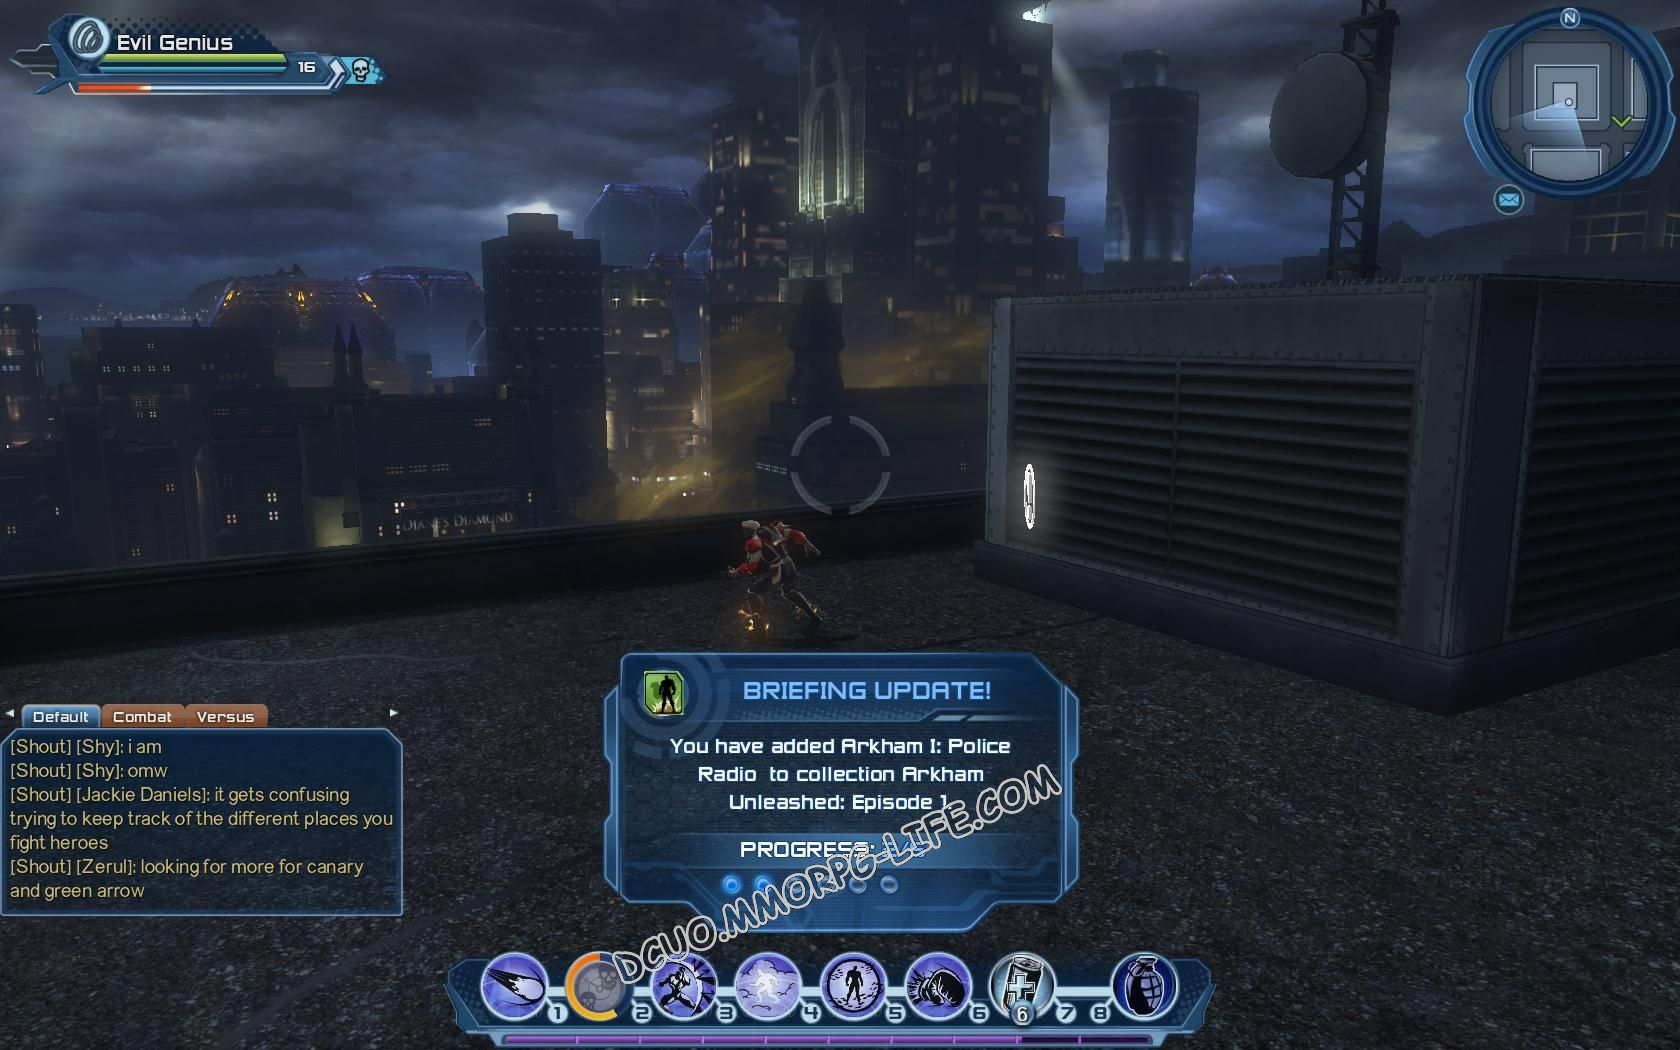 Briefing: Arkham Unleashed: Episode 1, step 3 Arkham I: Police Radio  image 623 middle size